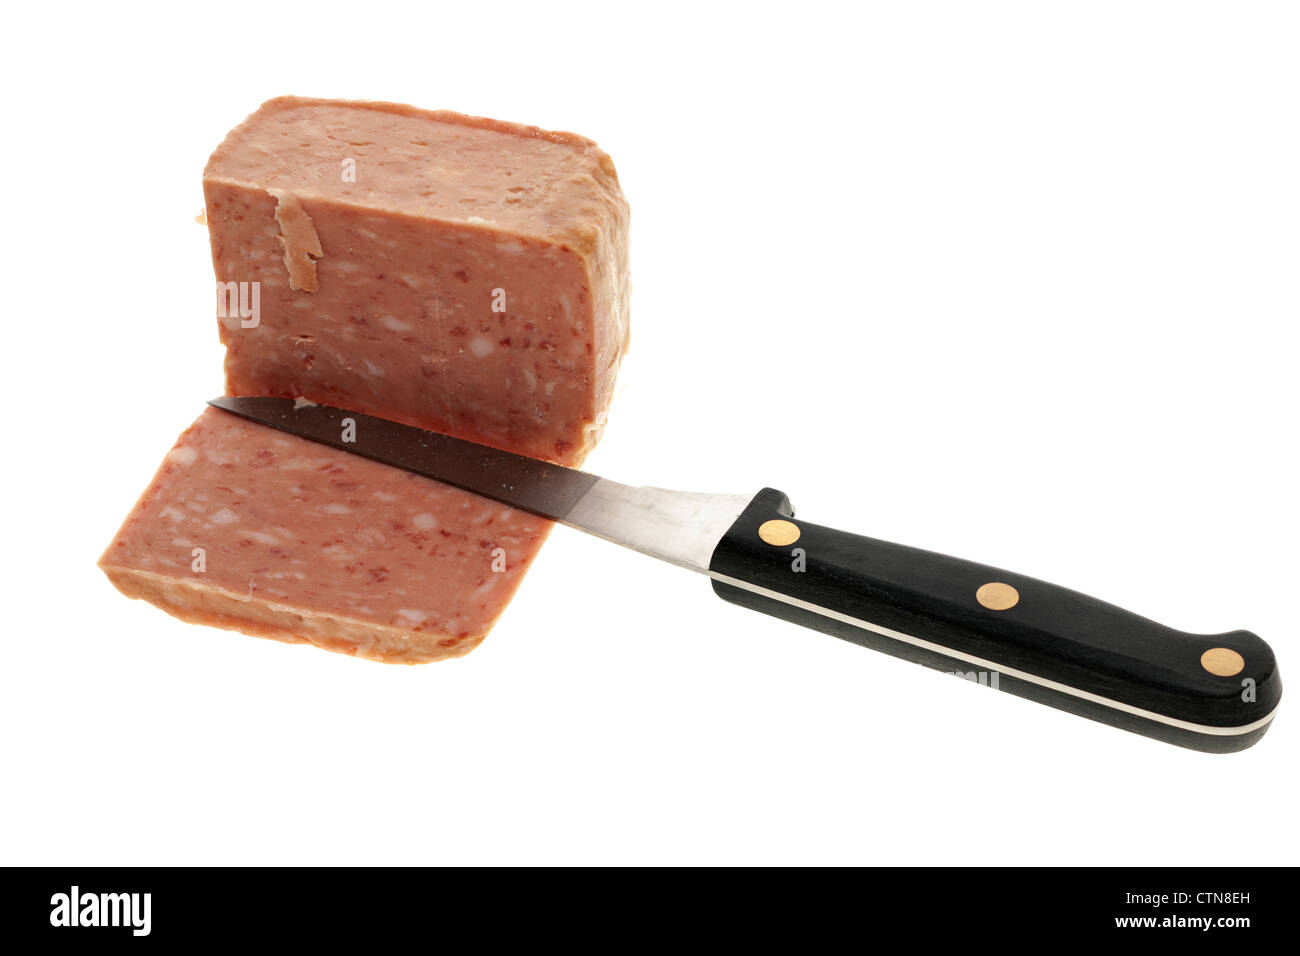 Luncheon meat sliced with a knife - Stock Image